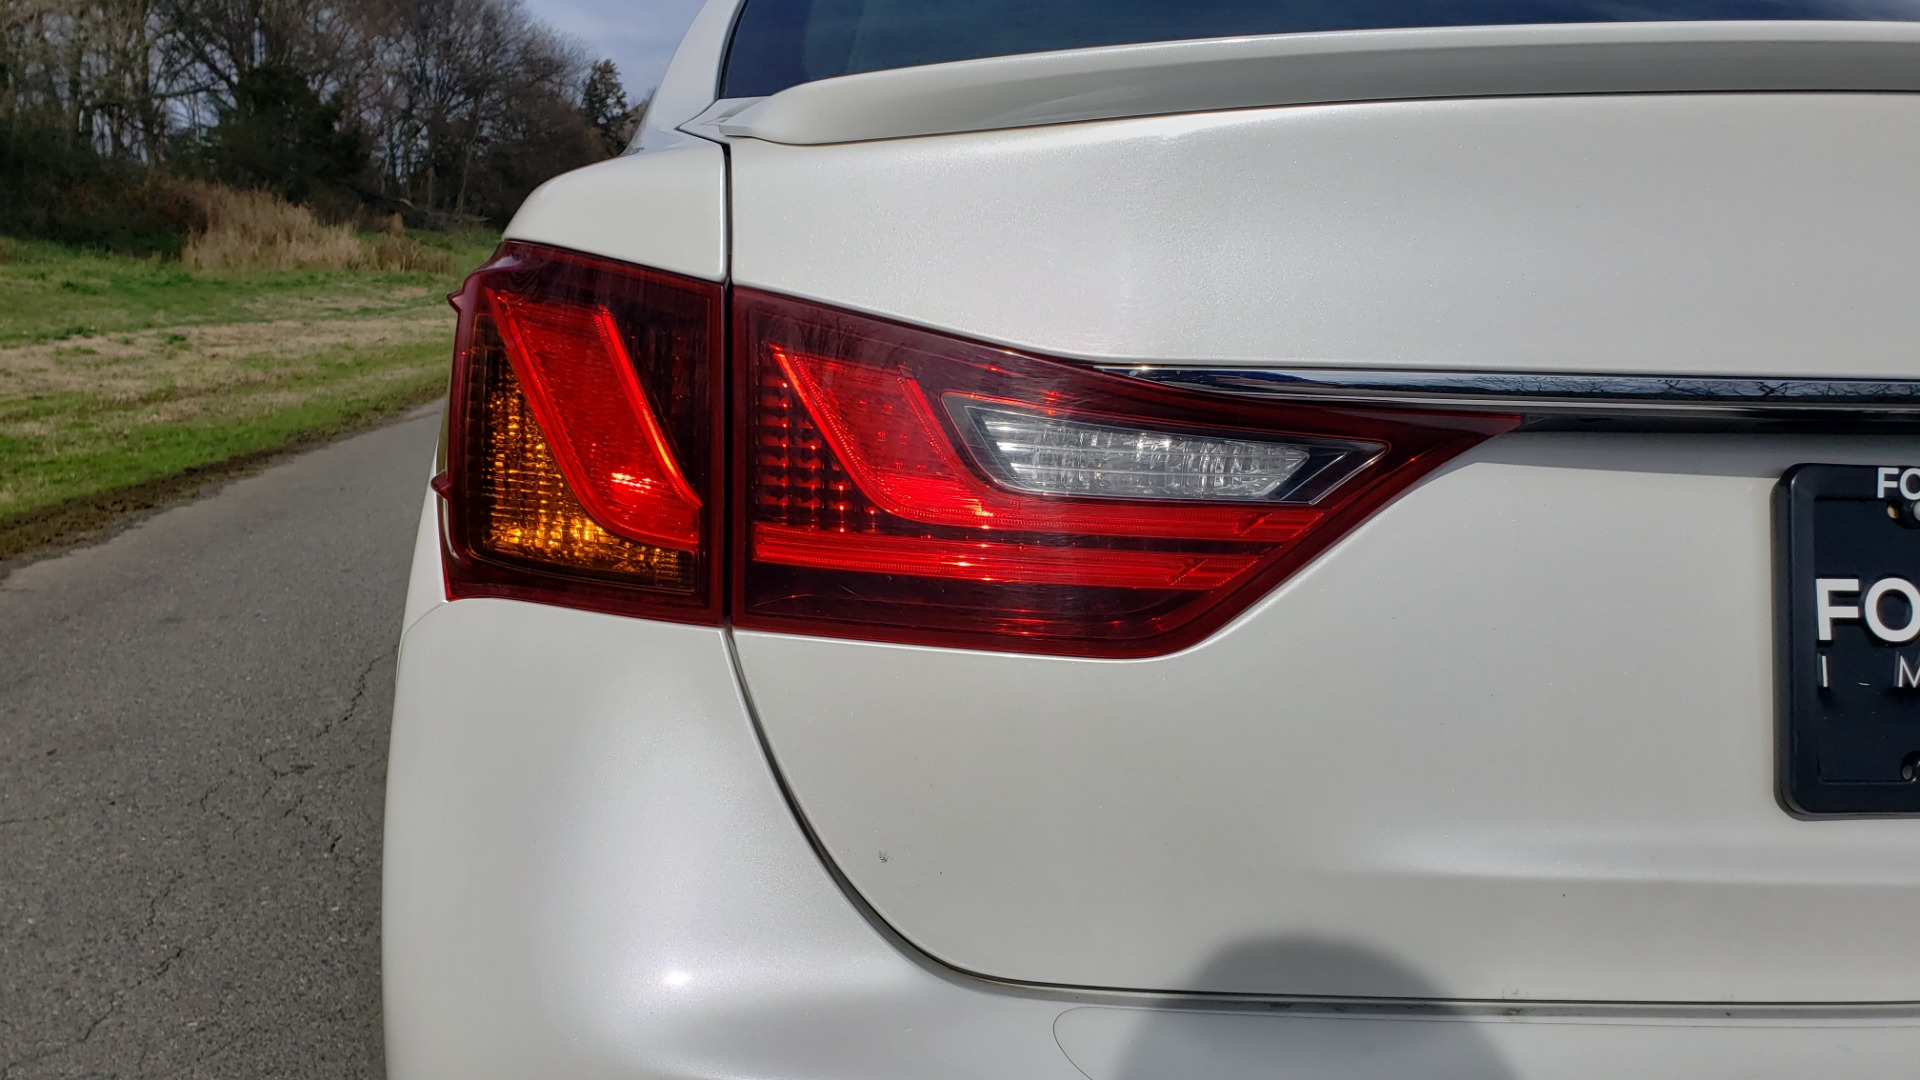 Used 2013 Lexus GS 350 F-SPORT / NAV / SUNROOF / BSM / PRK ASST / REARVIEW for sale Sold at Formula Imports in Charlotte NC 28227 23